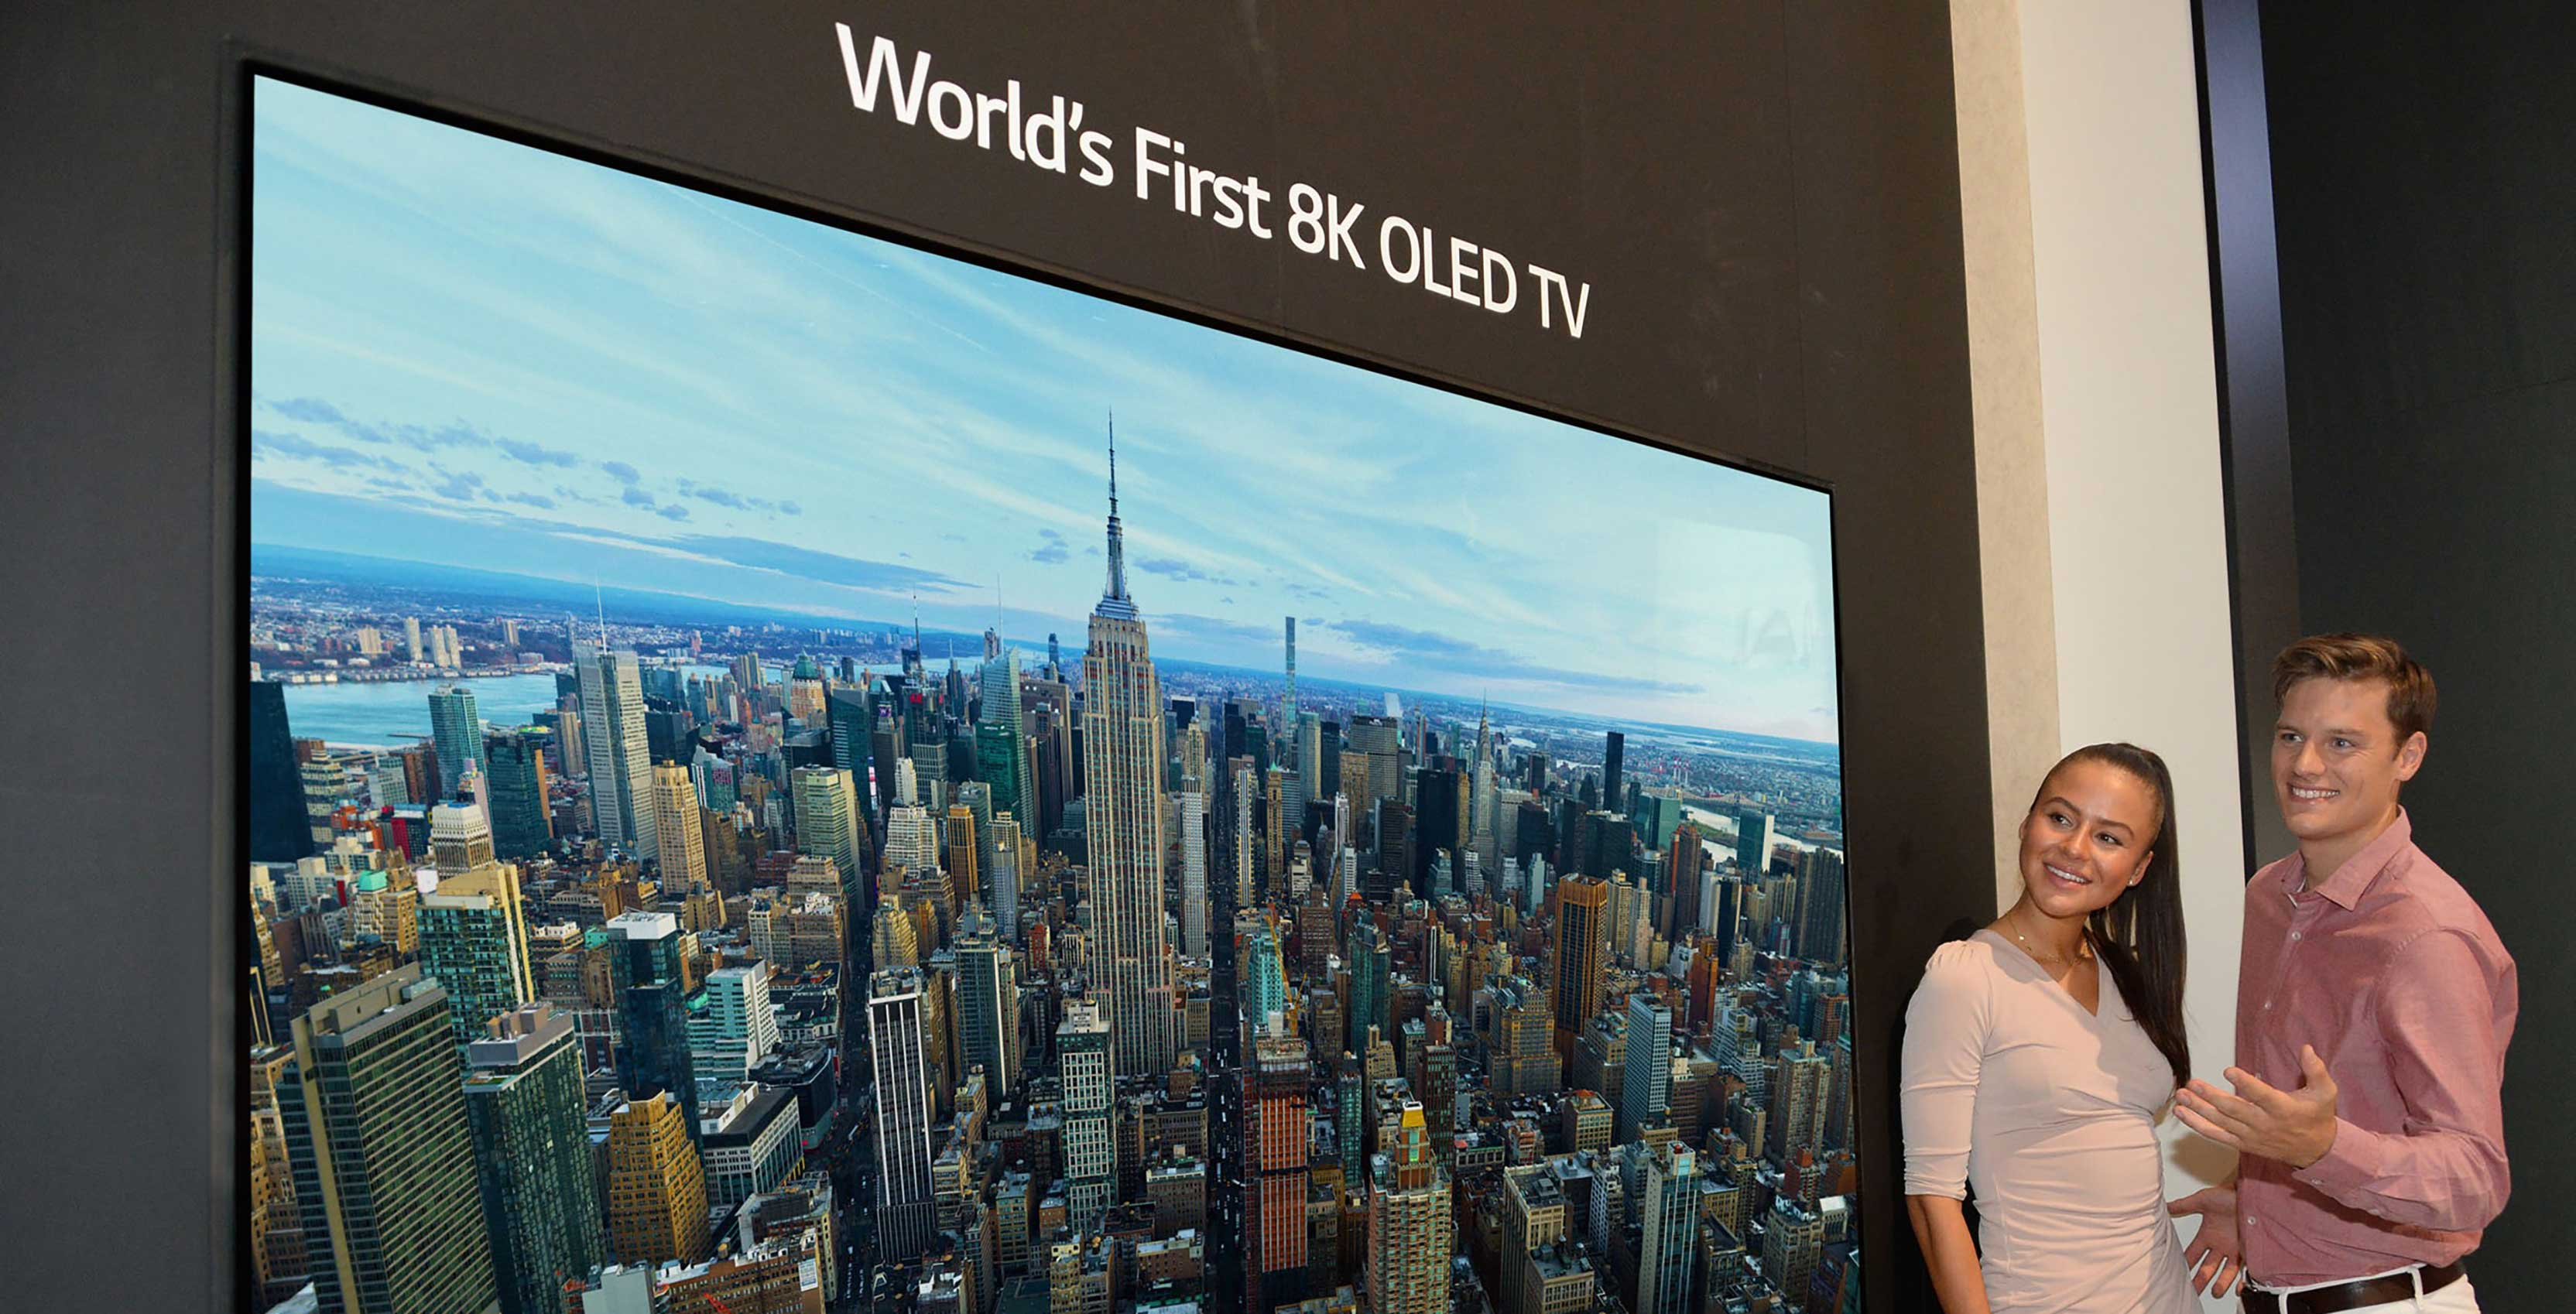 LG unveils the world's first 8K OLED TV at IFA 2018